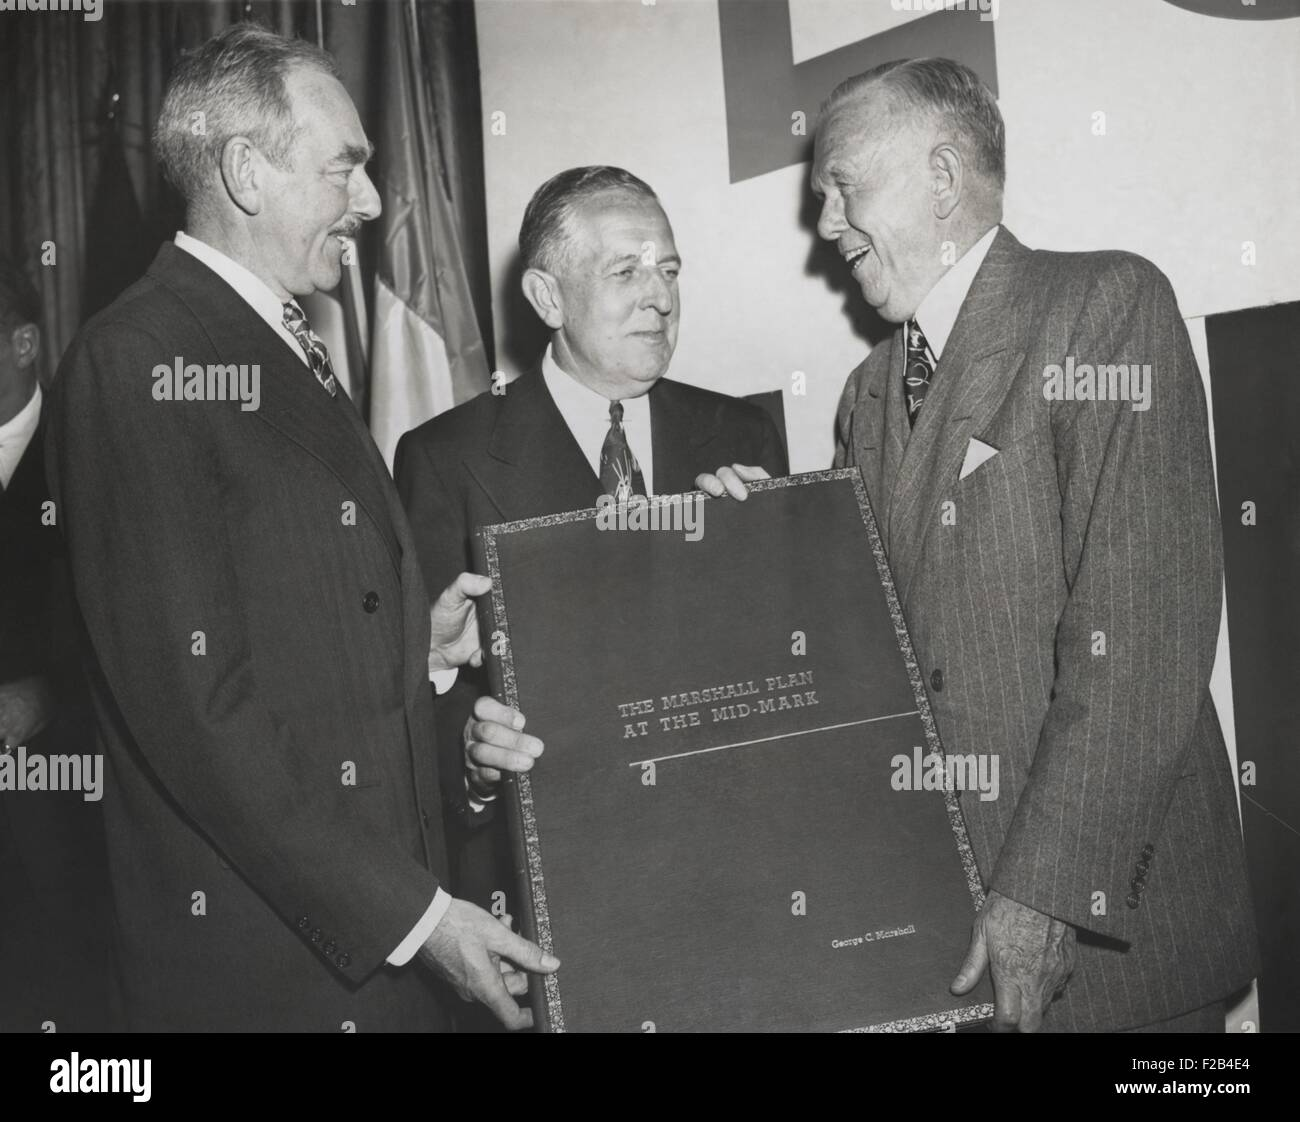 Celebration of the 2nd Anniversary of the Marshall Plan. Secretary of State Dean Acheson (left) and Economic Cooperation Stock Photo